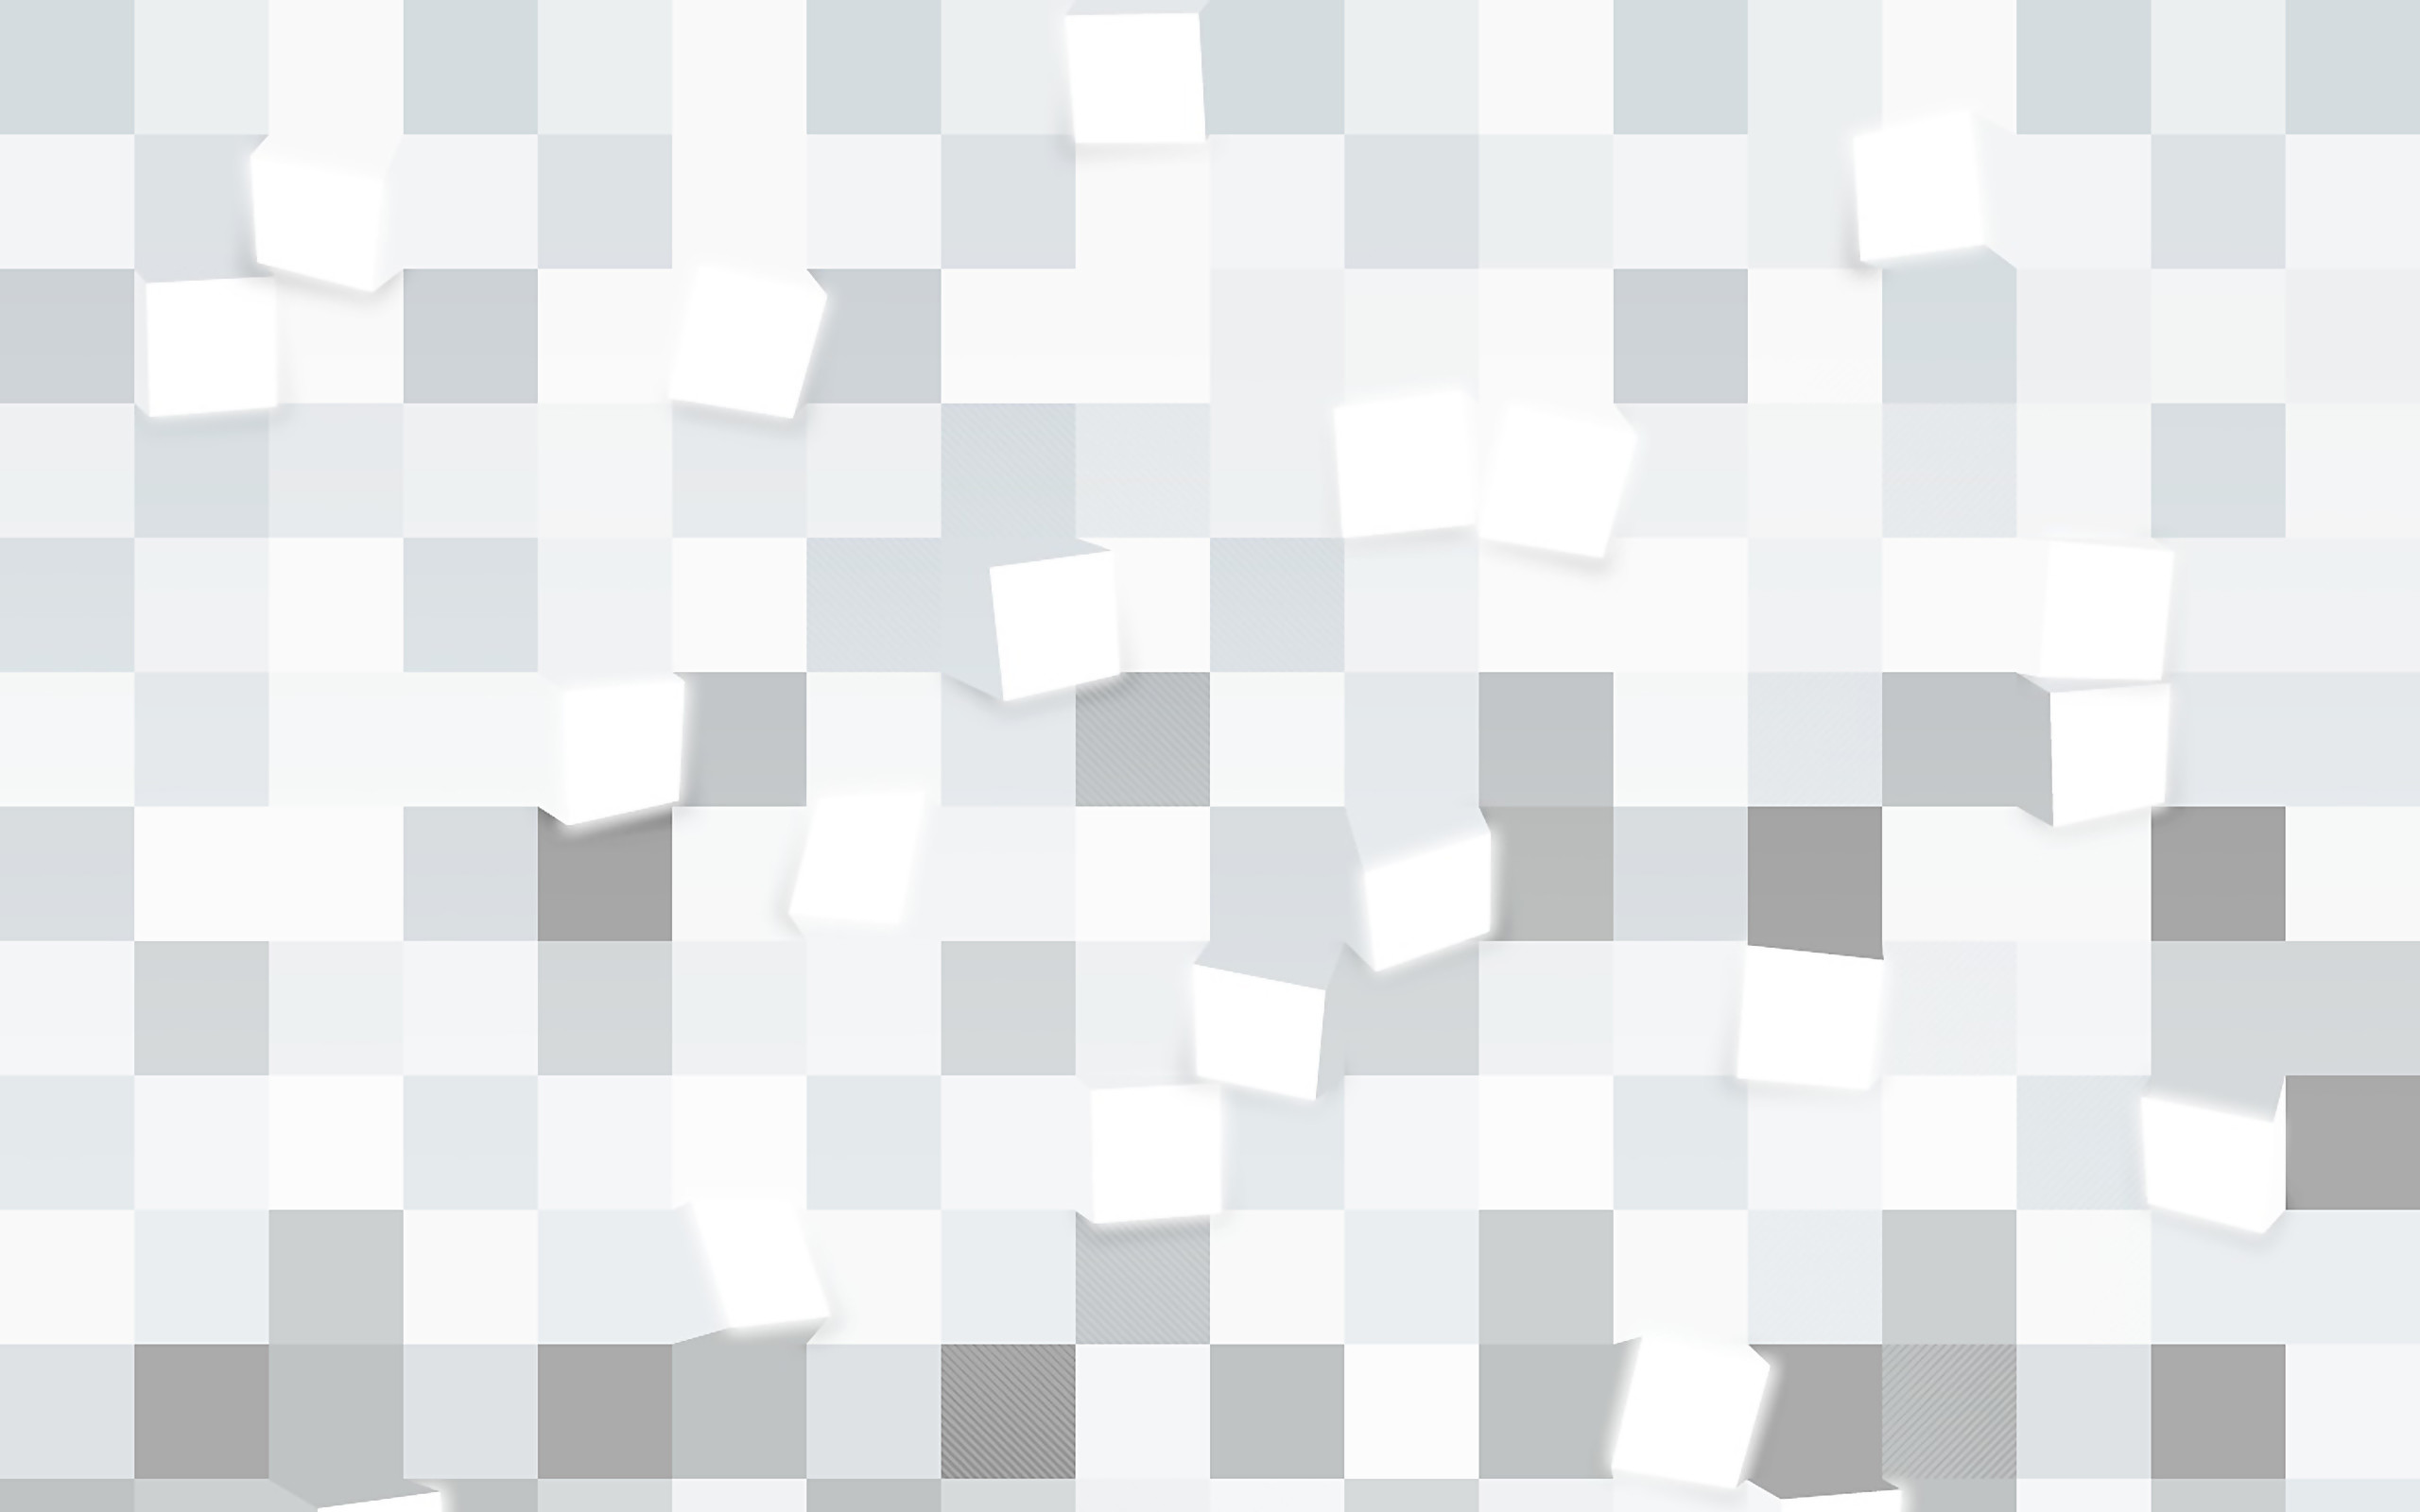 Black and white abstract wallpapers 73 images - White abstract background hd ...